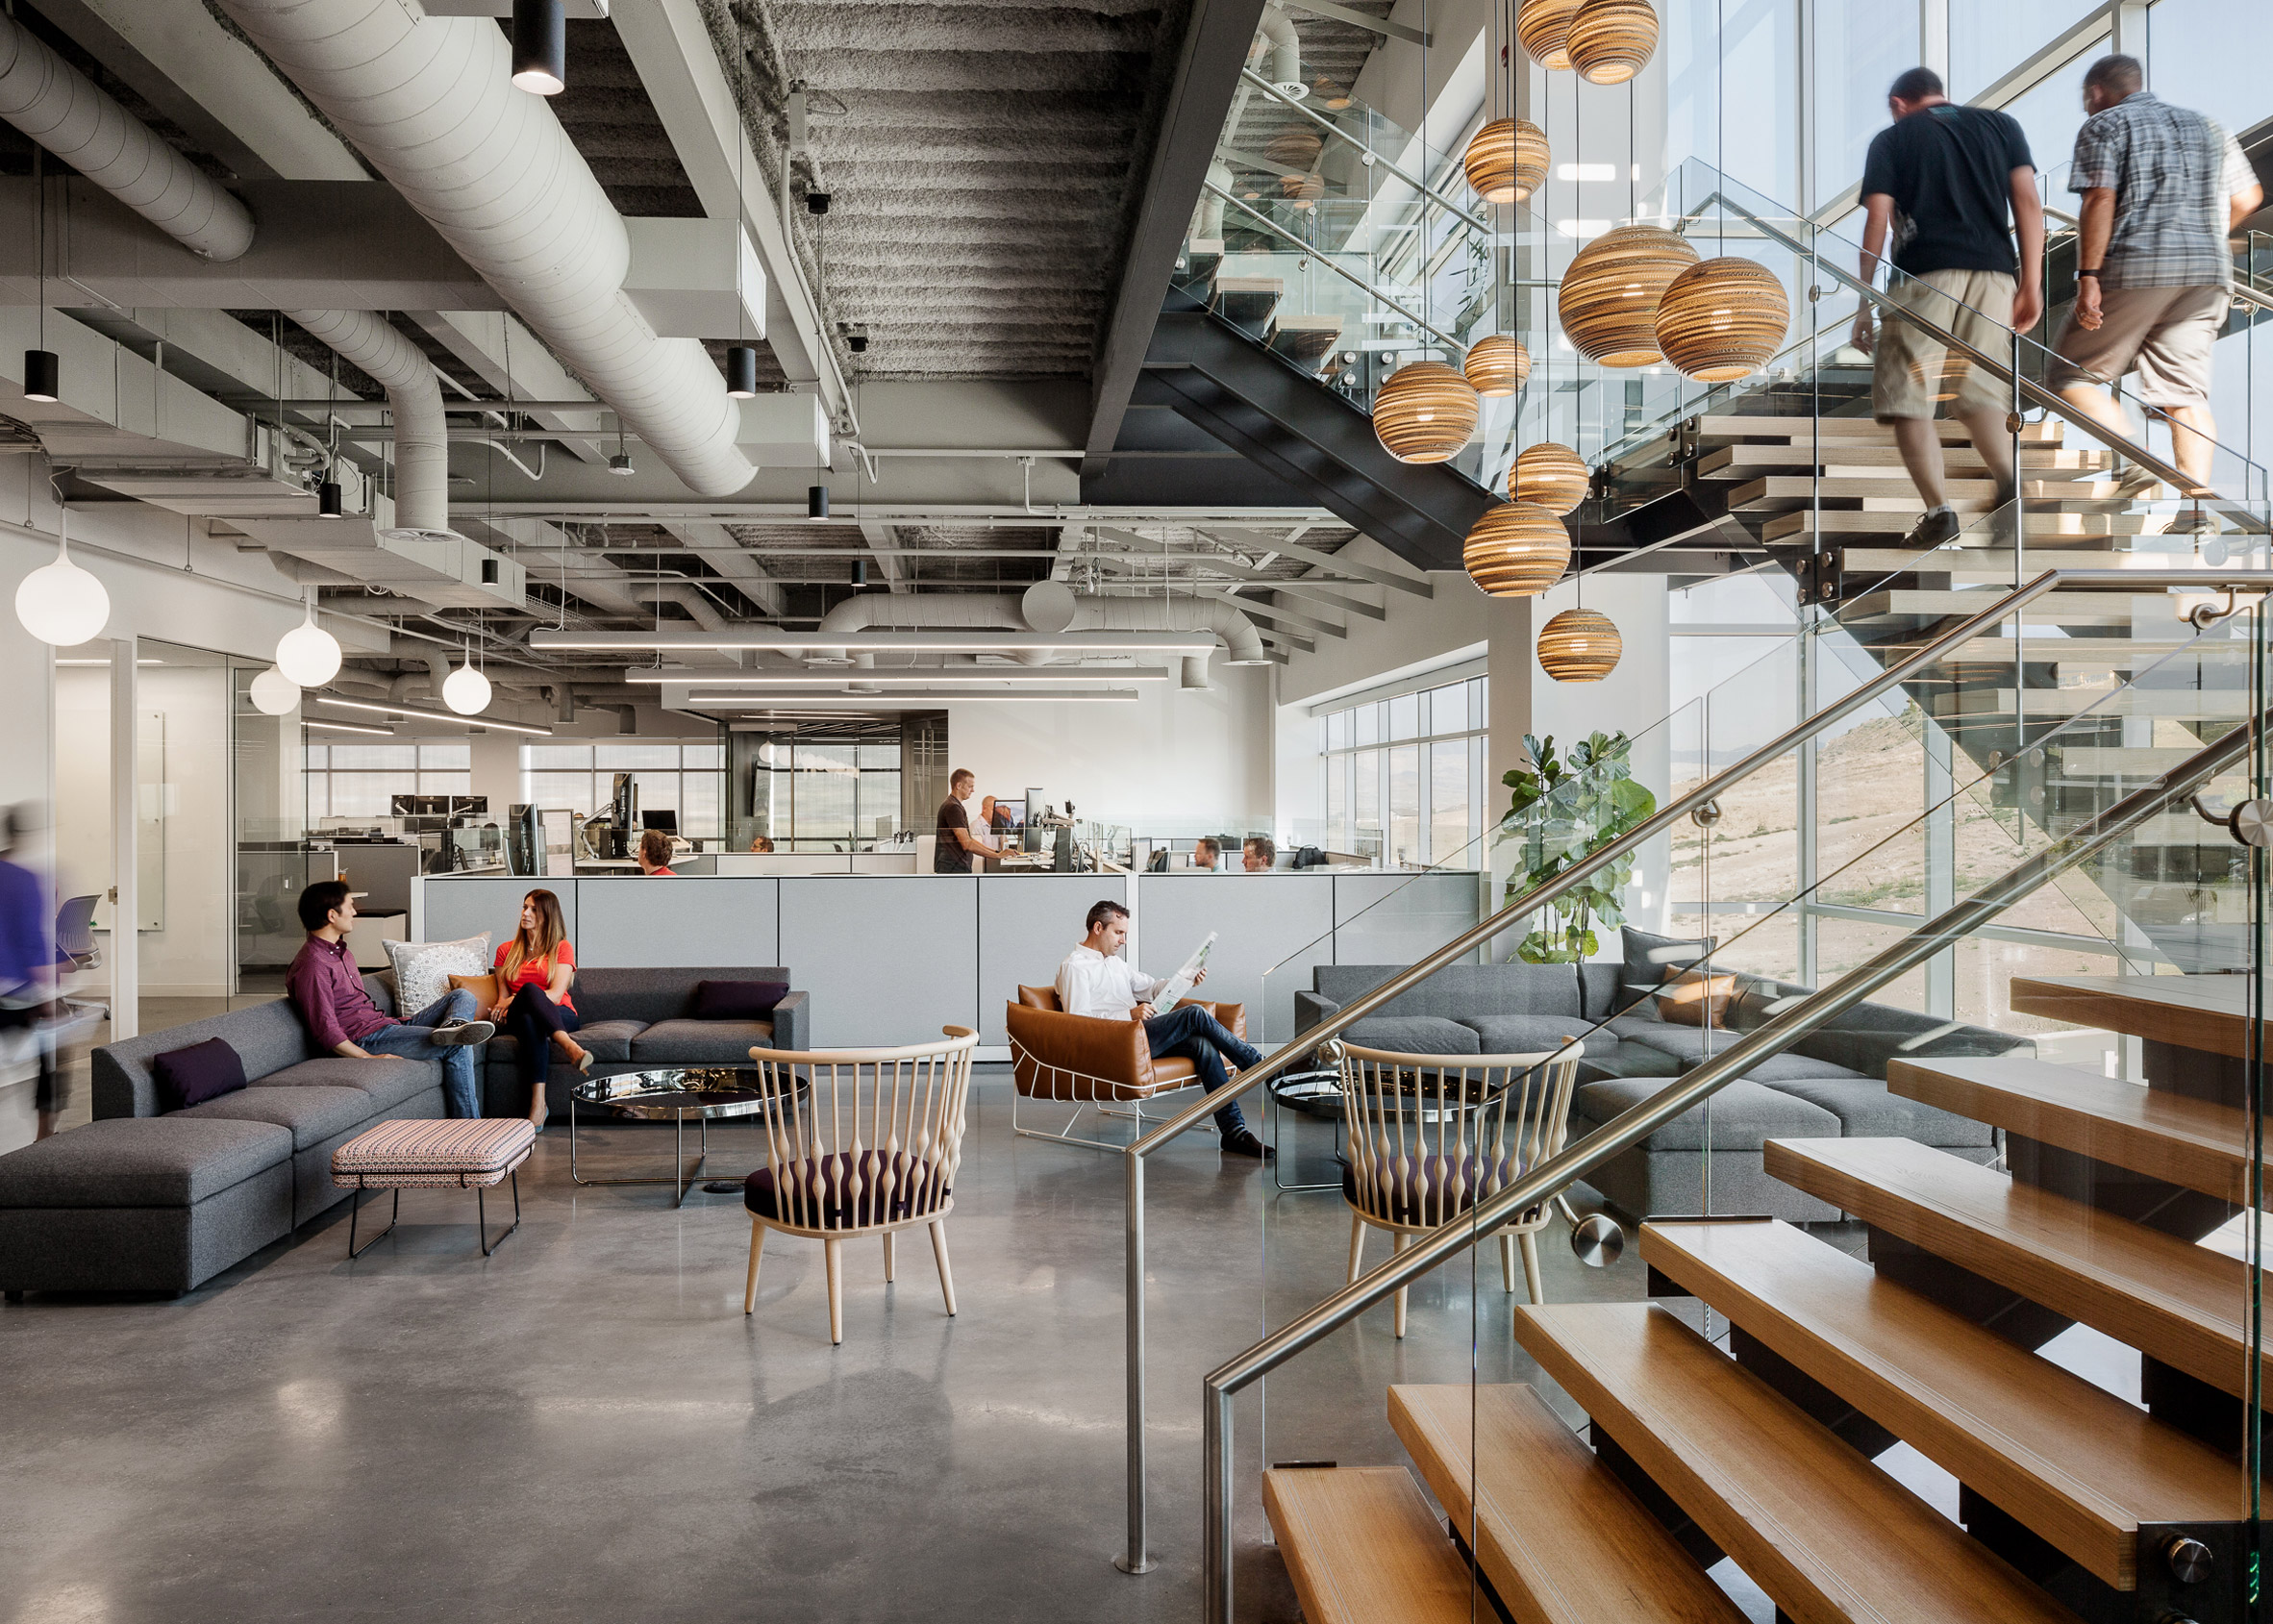 Ancestry office by Rapt Studio